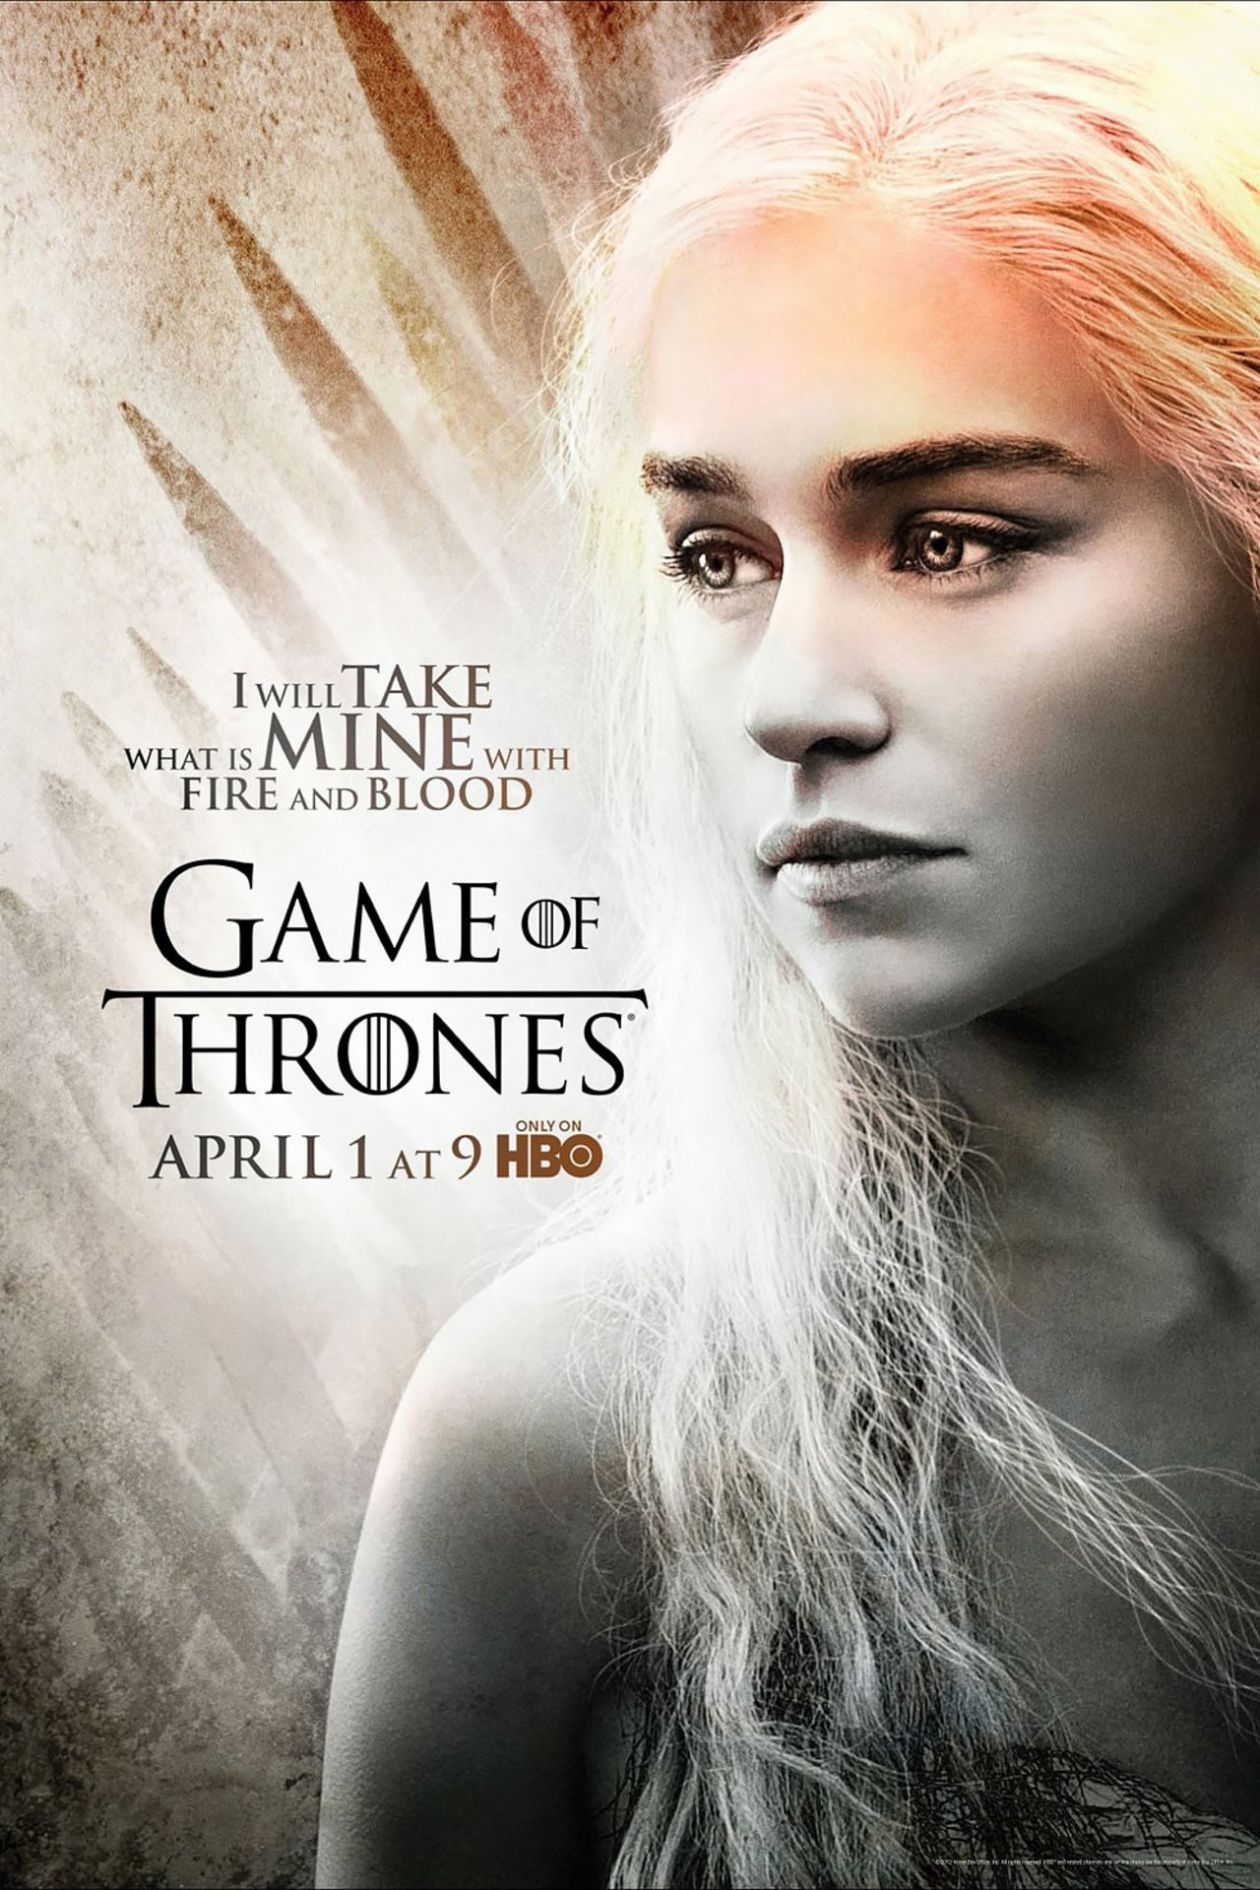 Emilia Clarke actress | Queen Daenerys Targaryen / Game of Thrones / Movie Series Season 2 Poster Affiche série Saison 2 2012